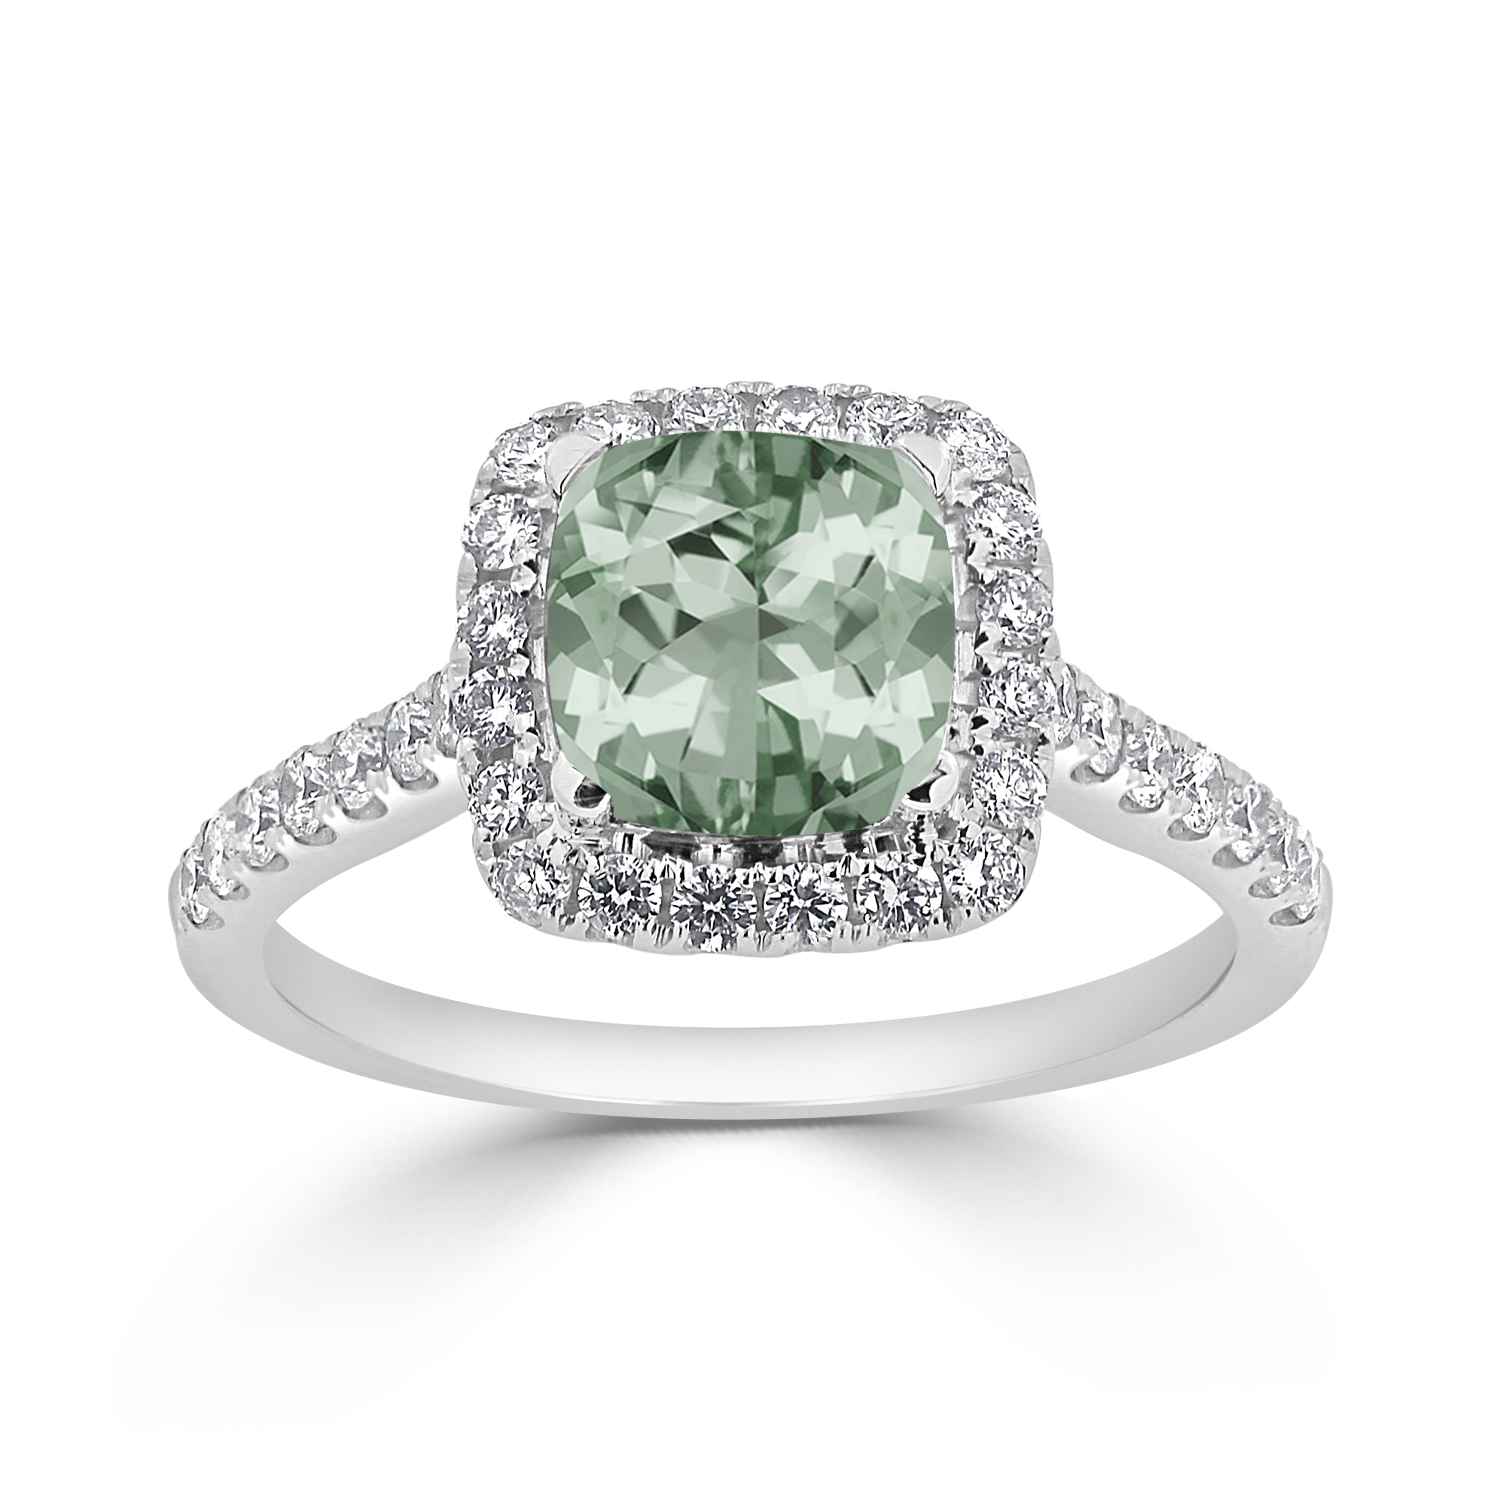 Halo Green Amethyst Diamond Ring in 14K White Gold with 0.85 carat Cushion Green Amethyst